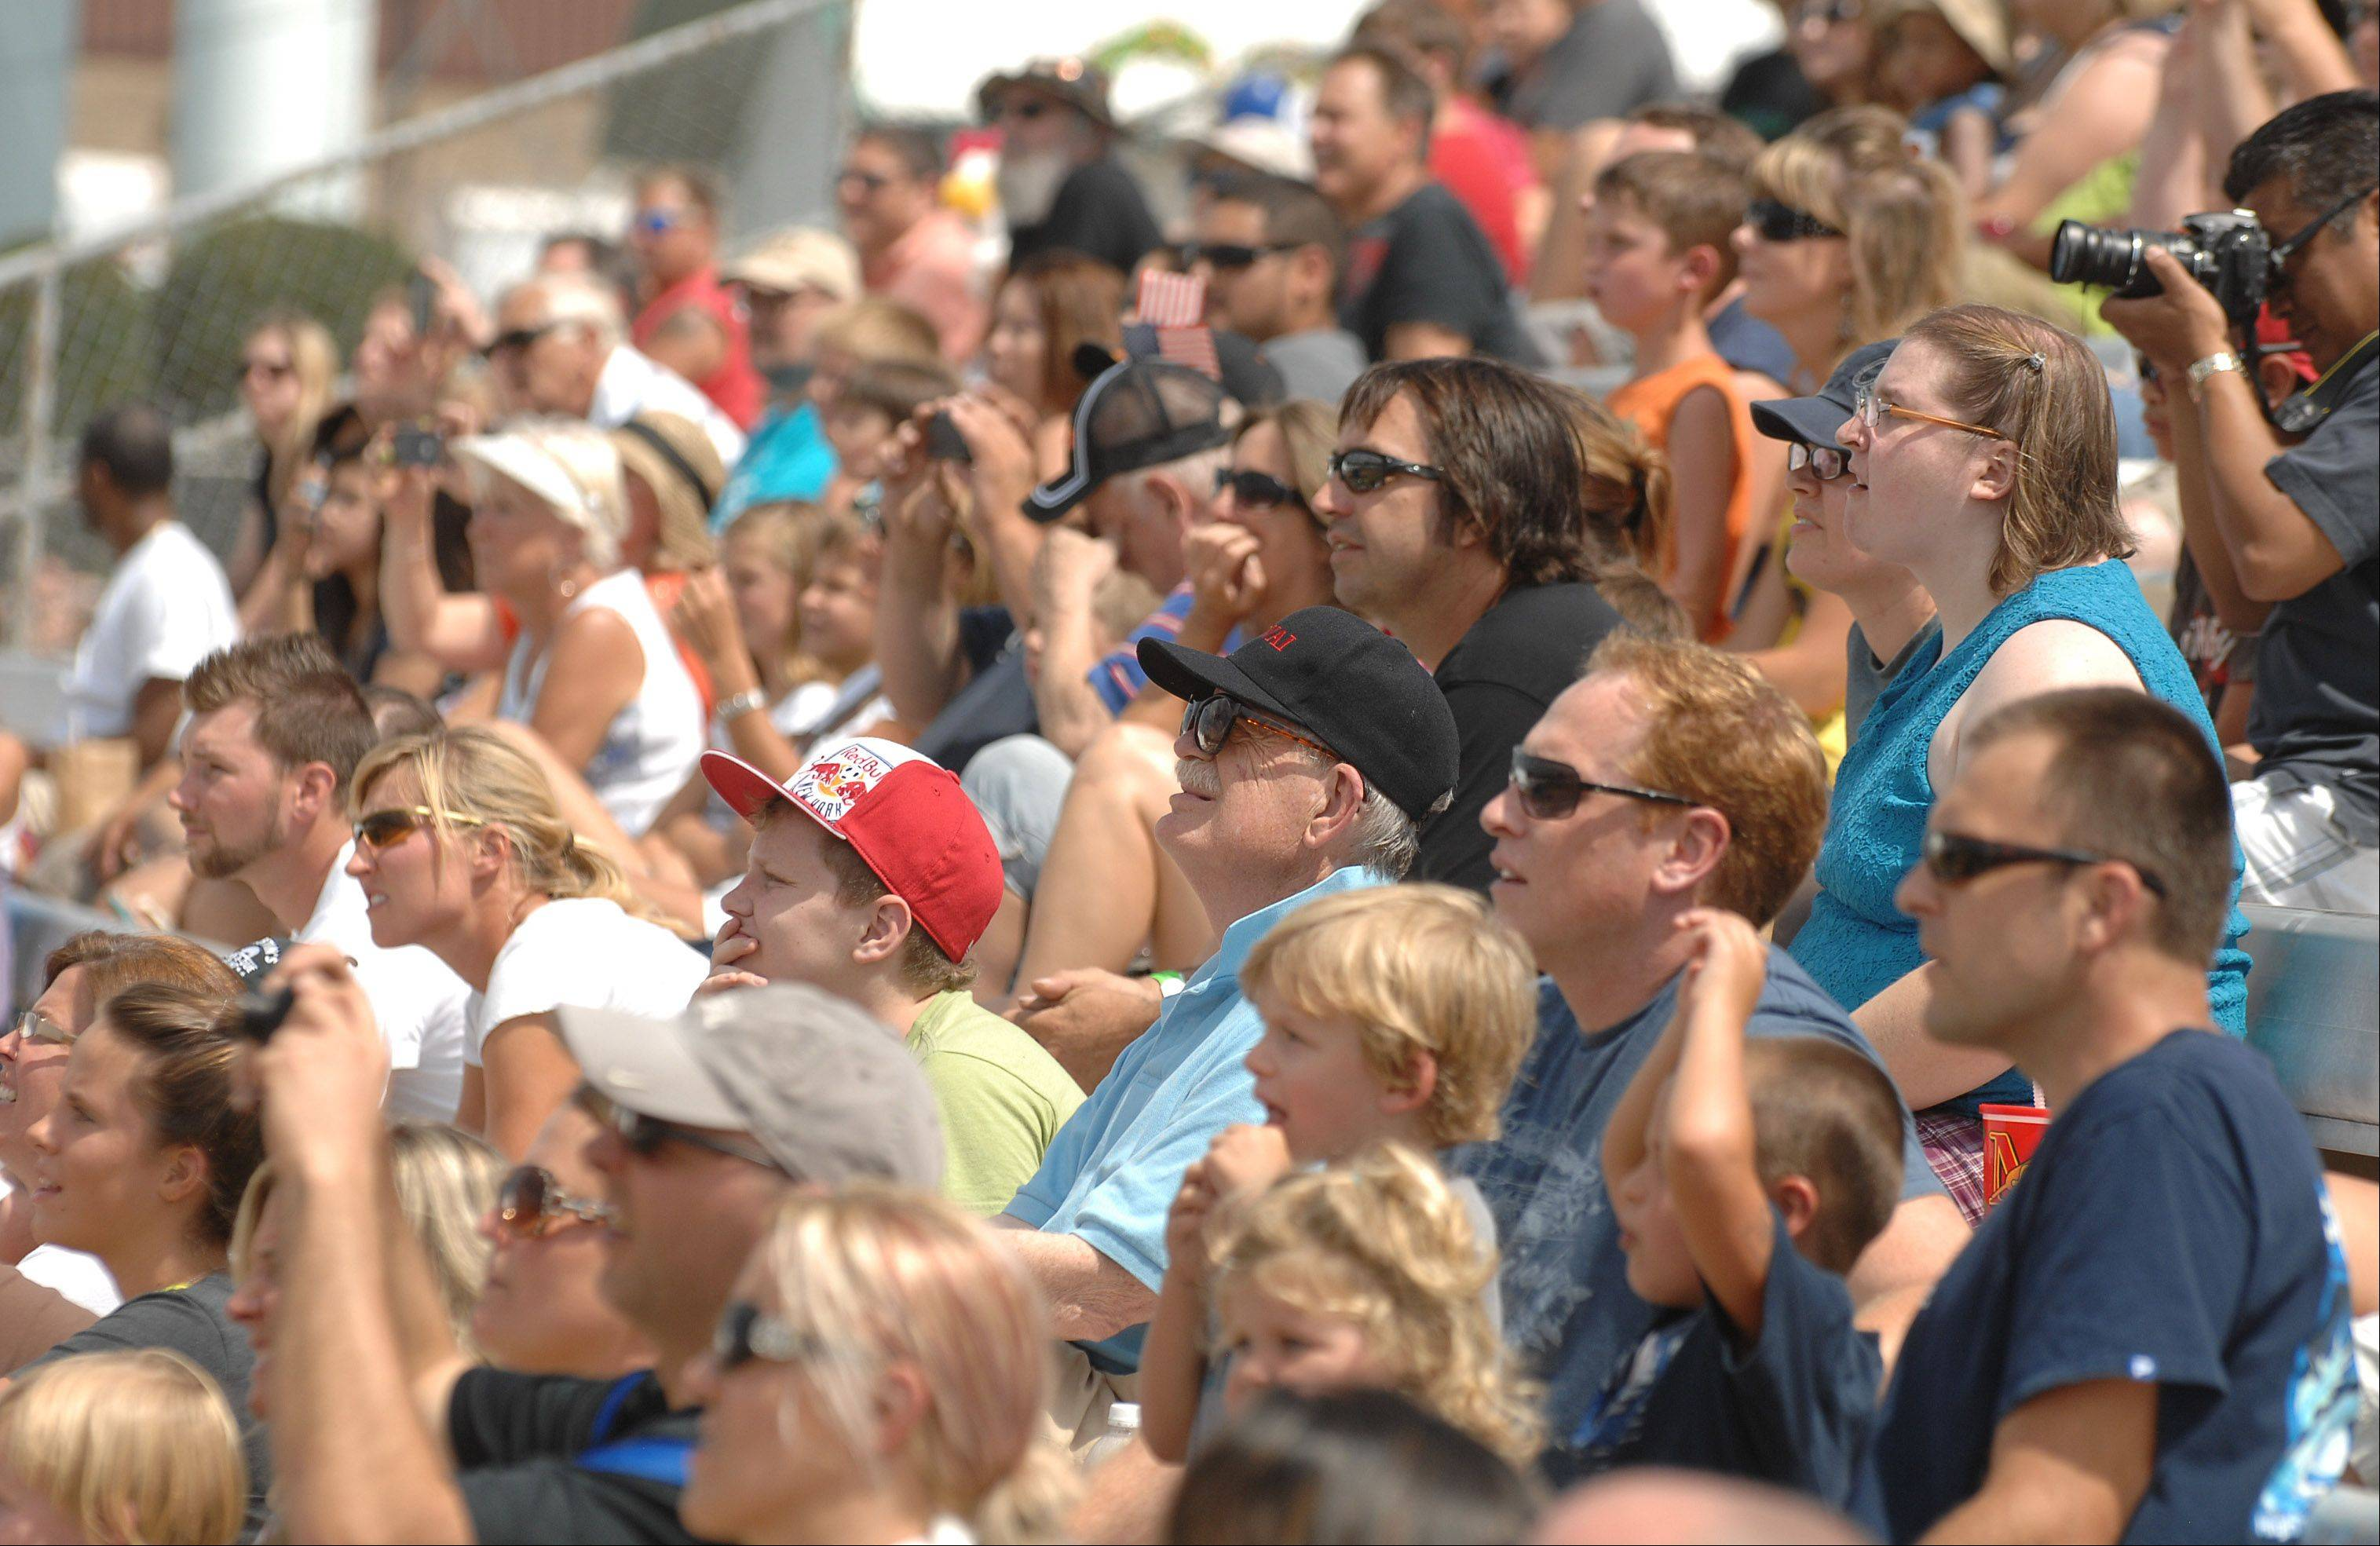 Fans keep an eye to the sky Saturday during the U.S. FMX Championship Series motocross contest at the DuPage County Fair in Wheaton. Three local judges gave riders scores based on crowd applause.